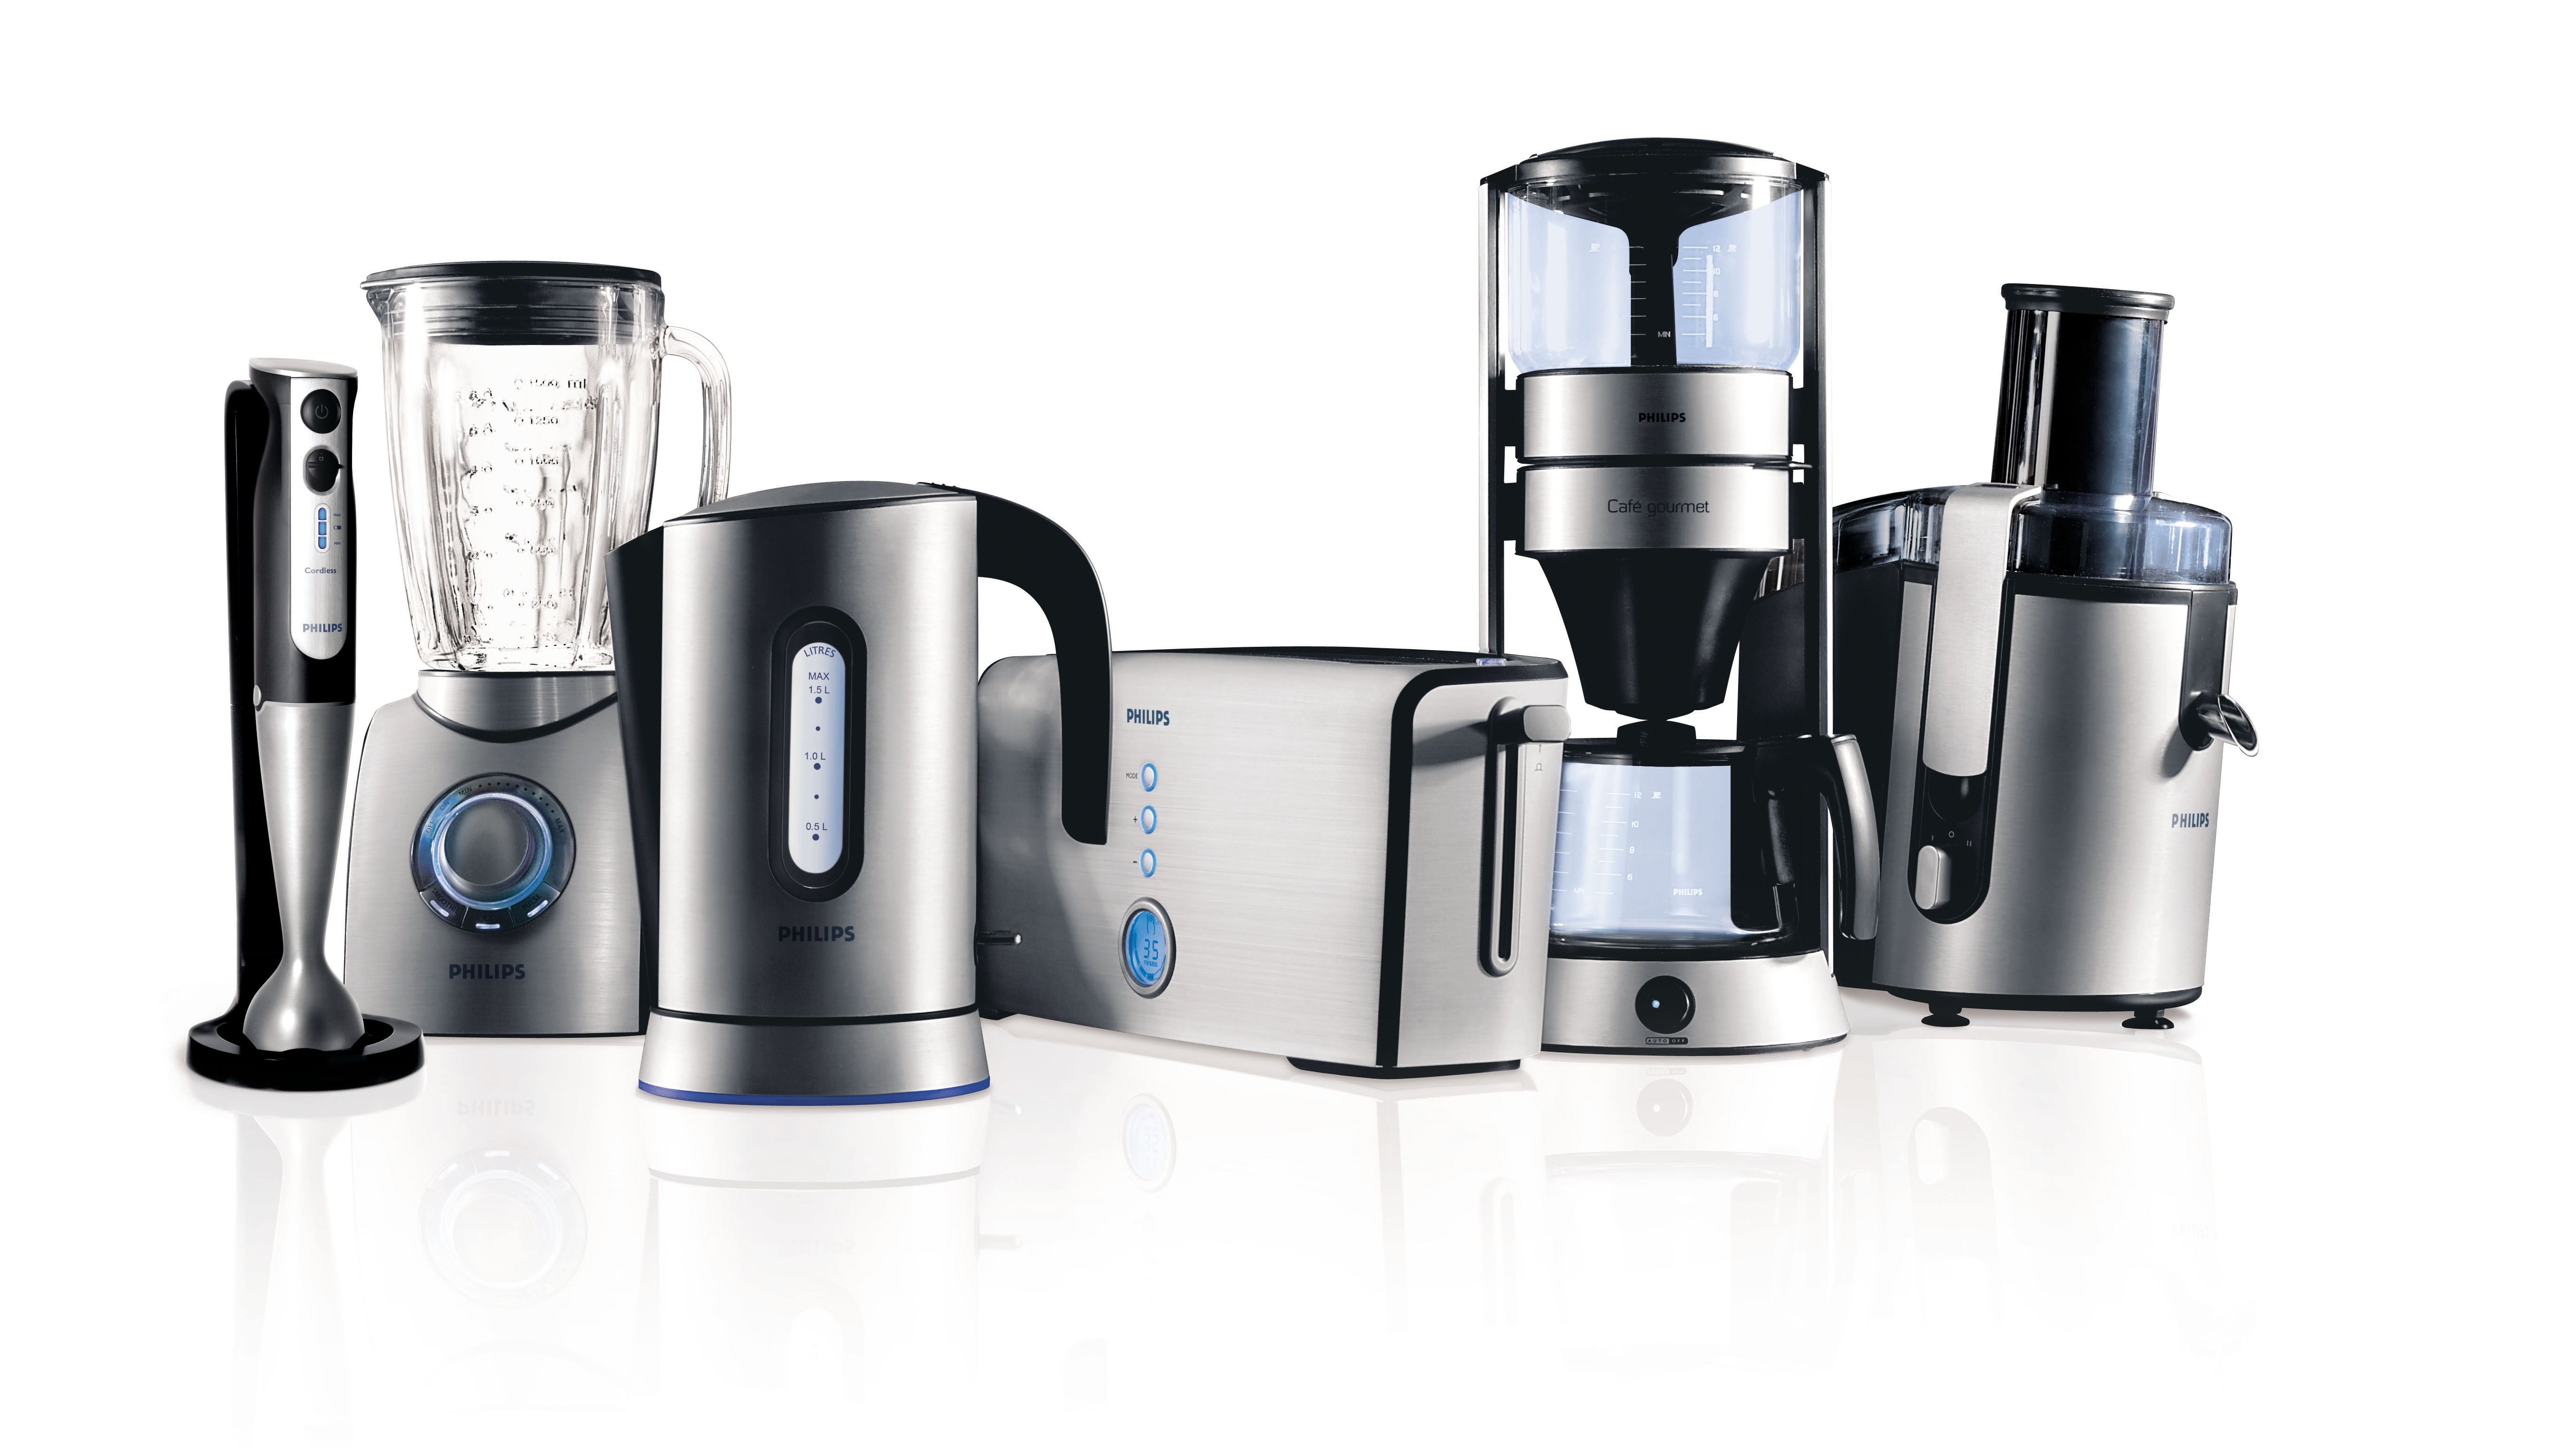 Uncategorized Home Kitchen Appliance clewers betta home living carpet court in clare valley httpclewers com auimageshomepage slideshowkitchen appliances dap jpg